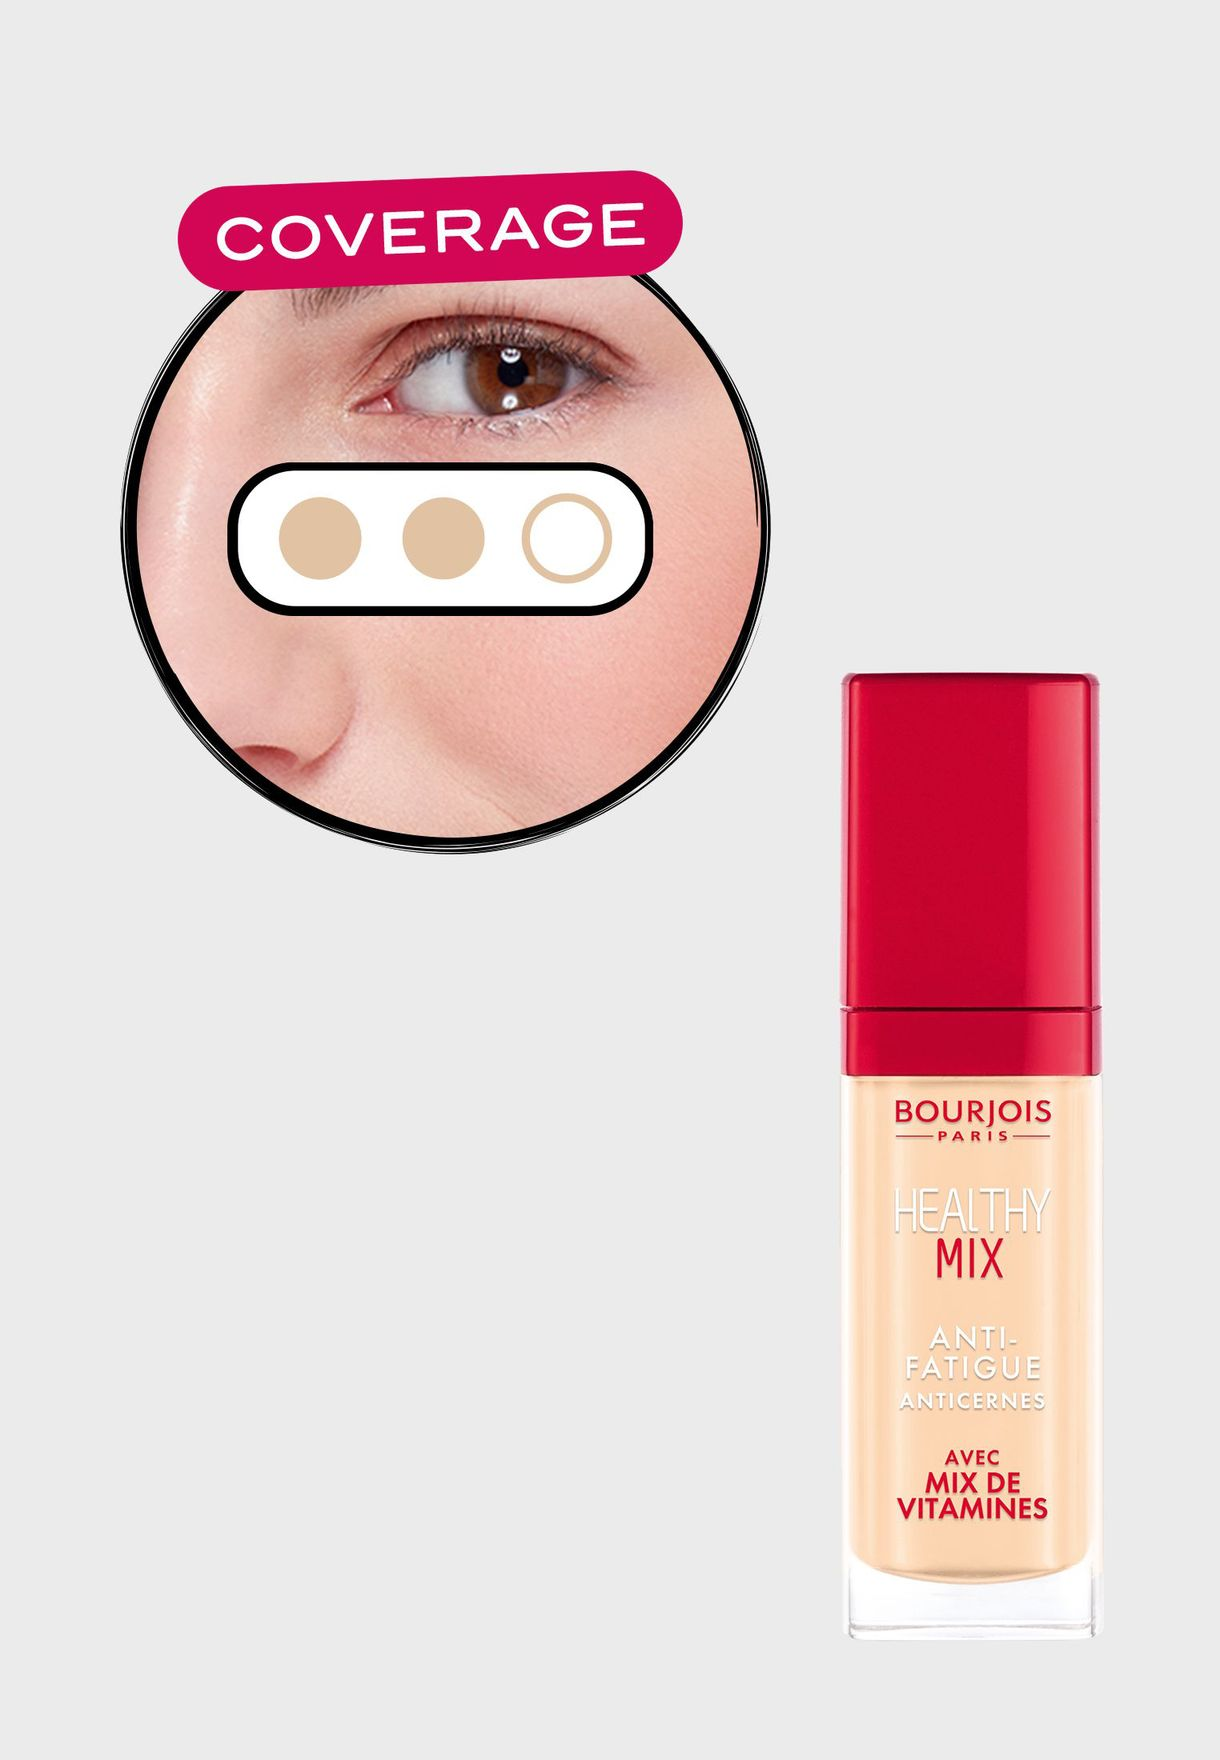 Healthy Mix Anti-Fatigue Concealer 49.5 Light Sand, 10 ml - 0.34 oz